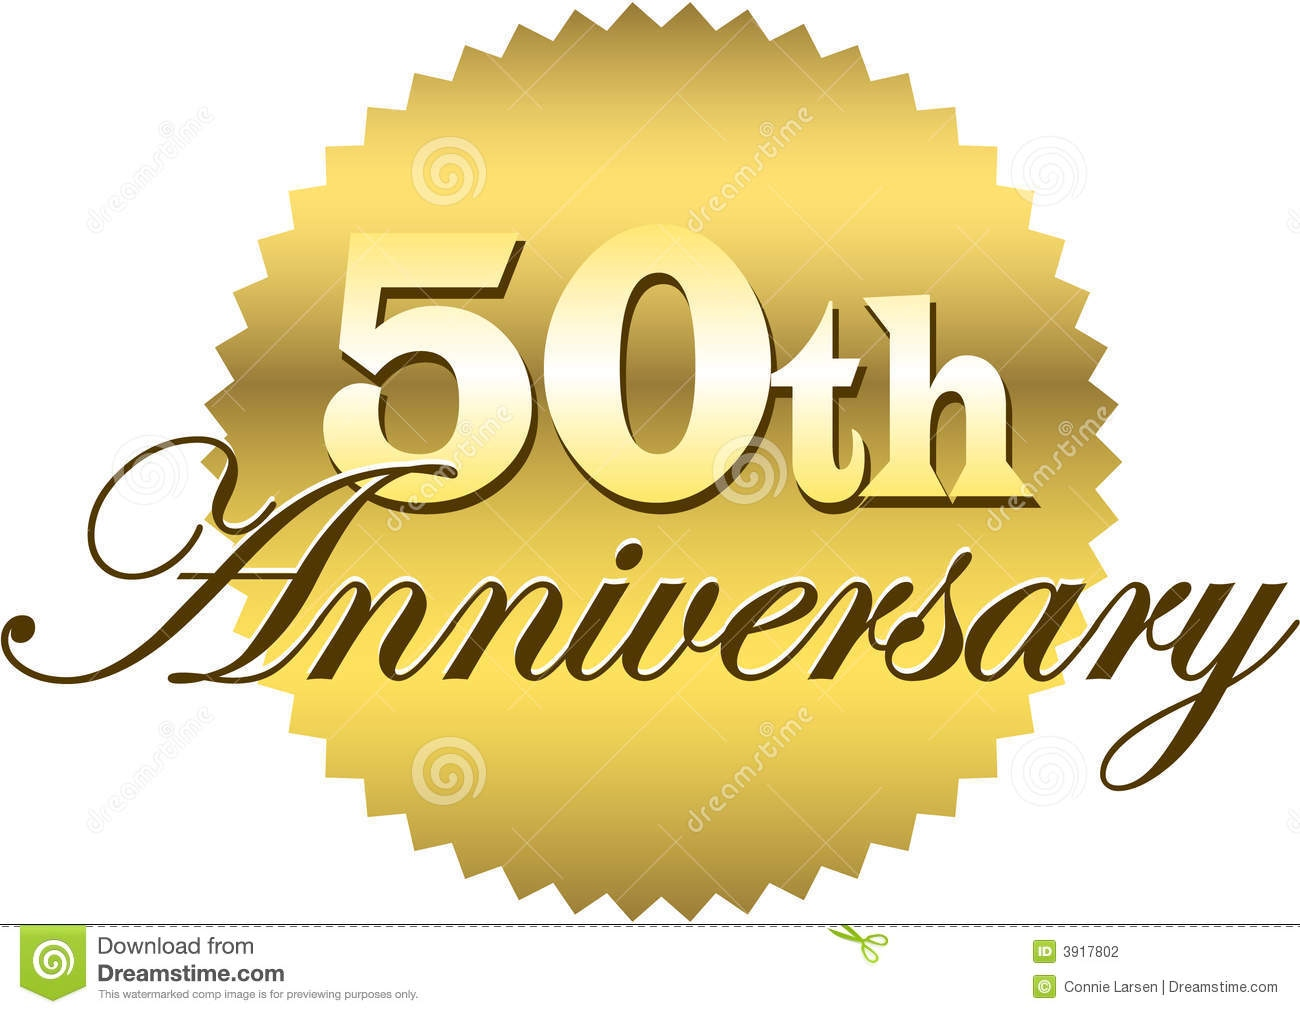 Anniversary clipart golden wedding.  th logo ideas